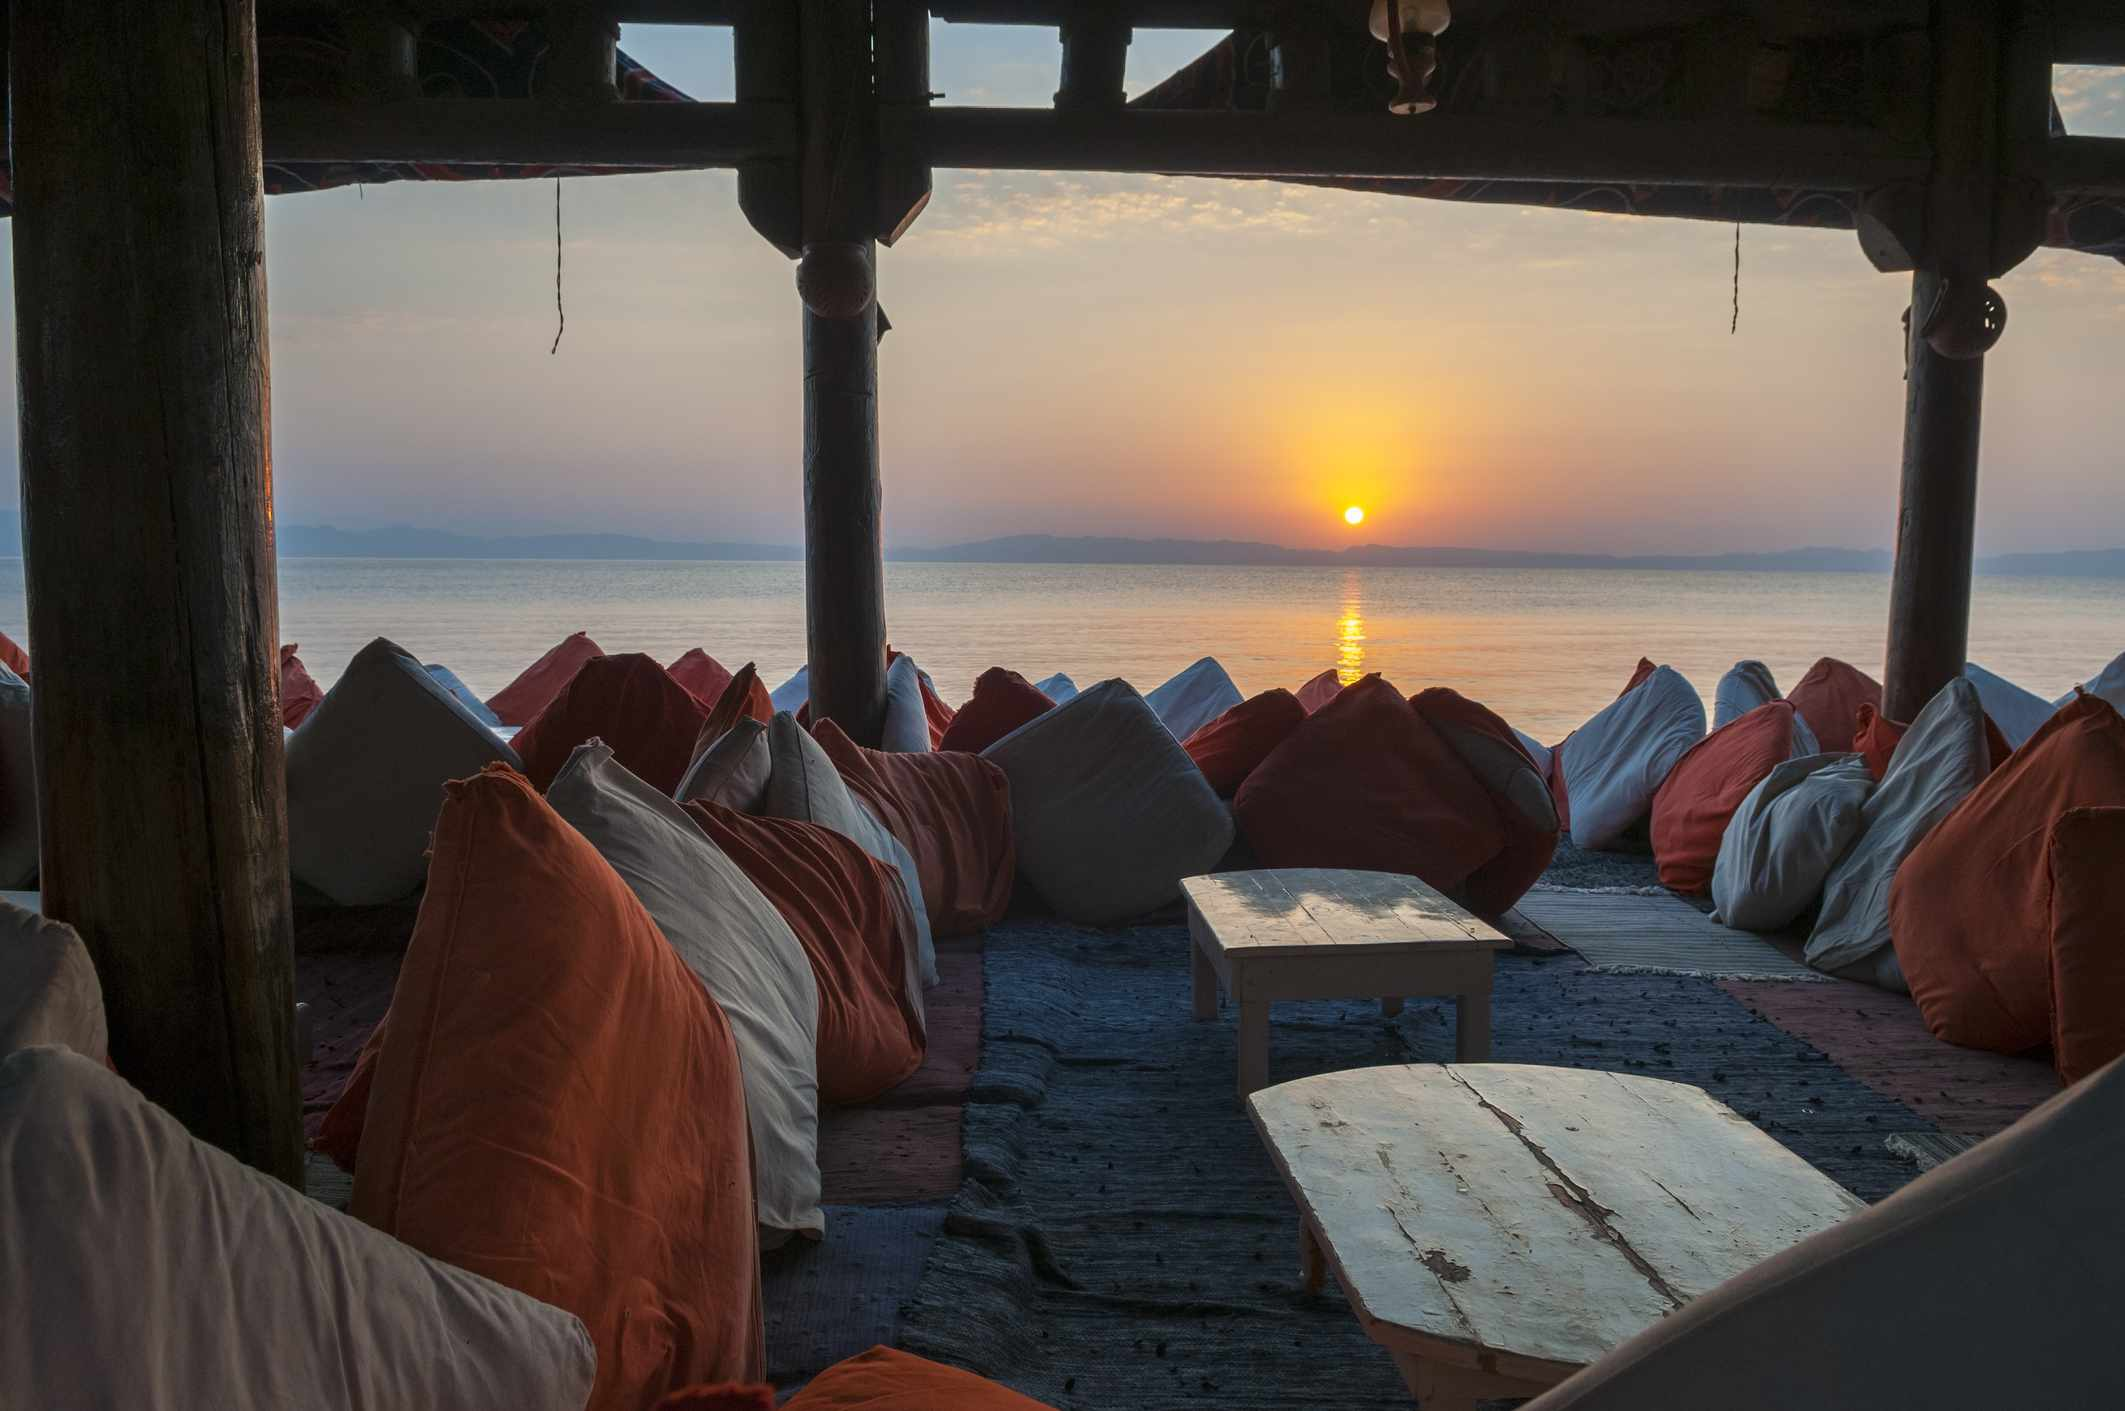 The Top 12 Things to Do in Dahab, Egypt